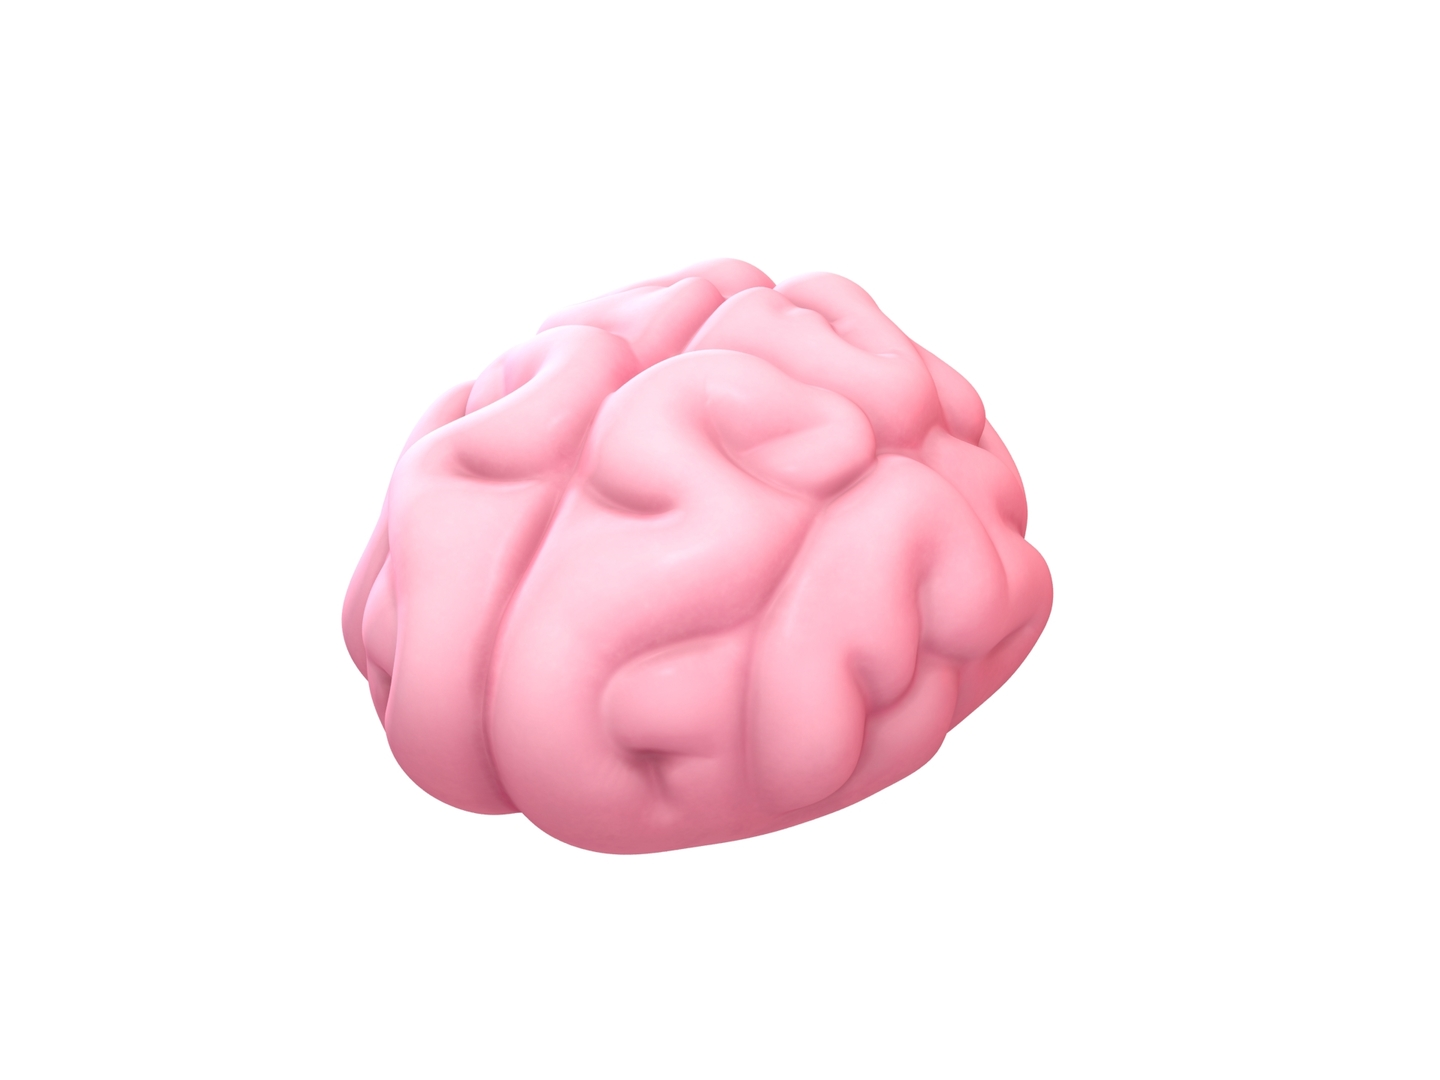 3D brain cartoon model